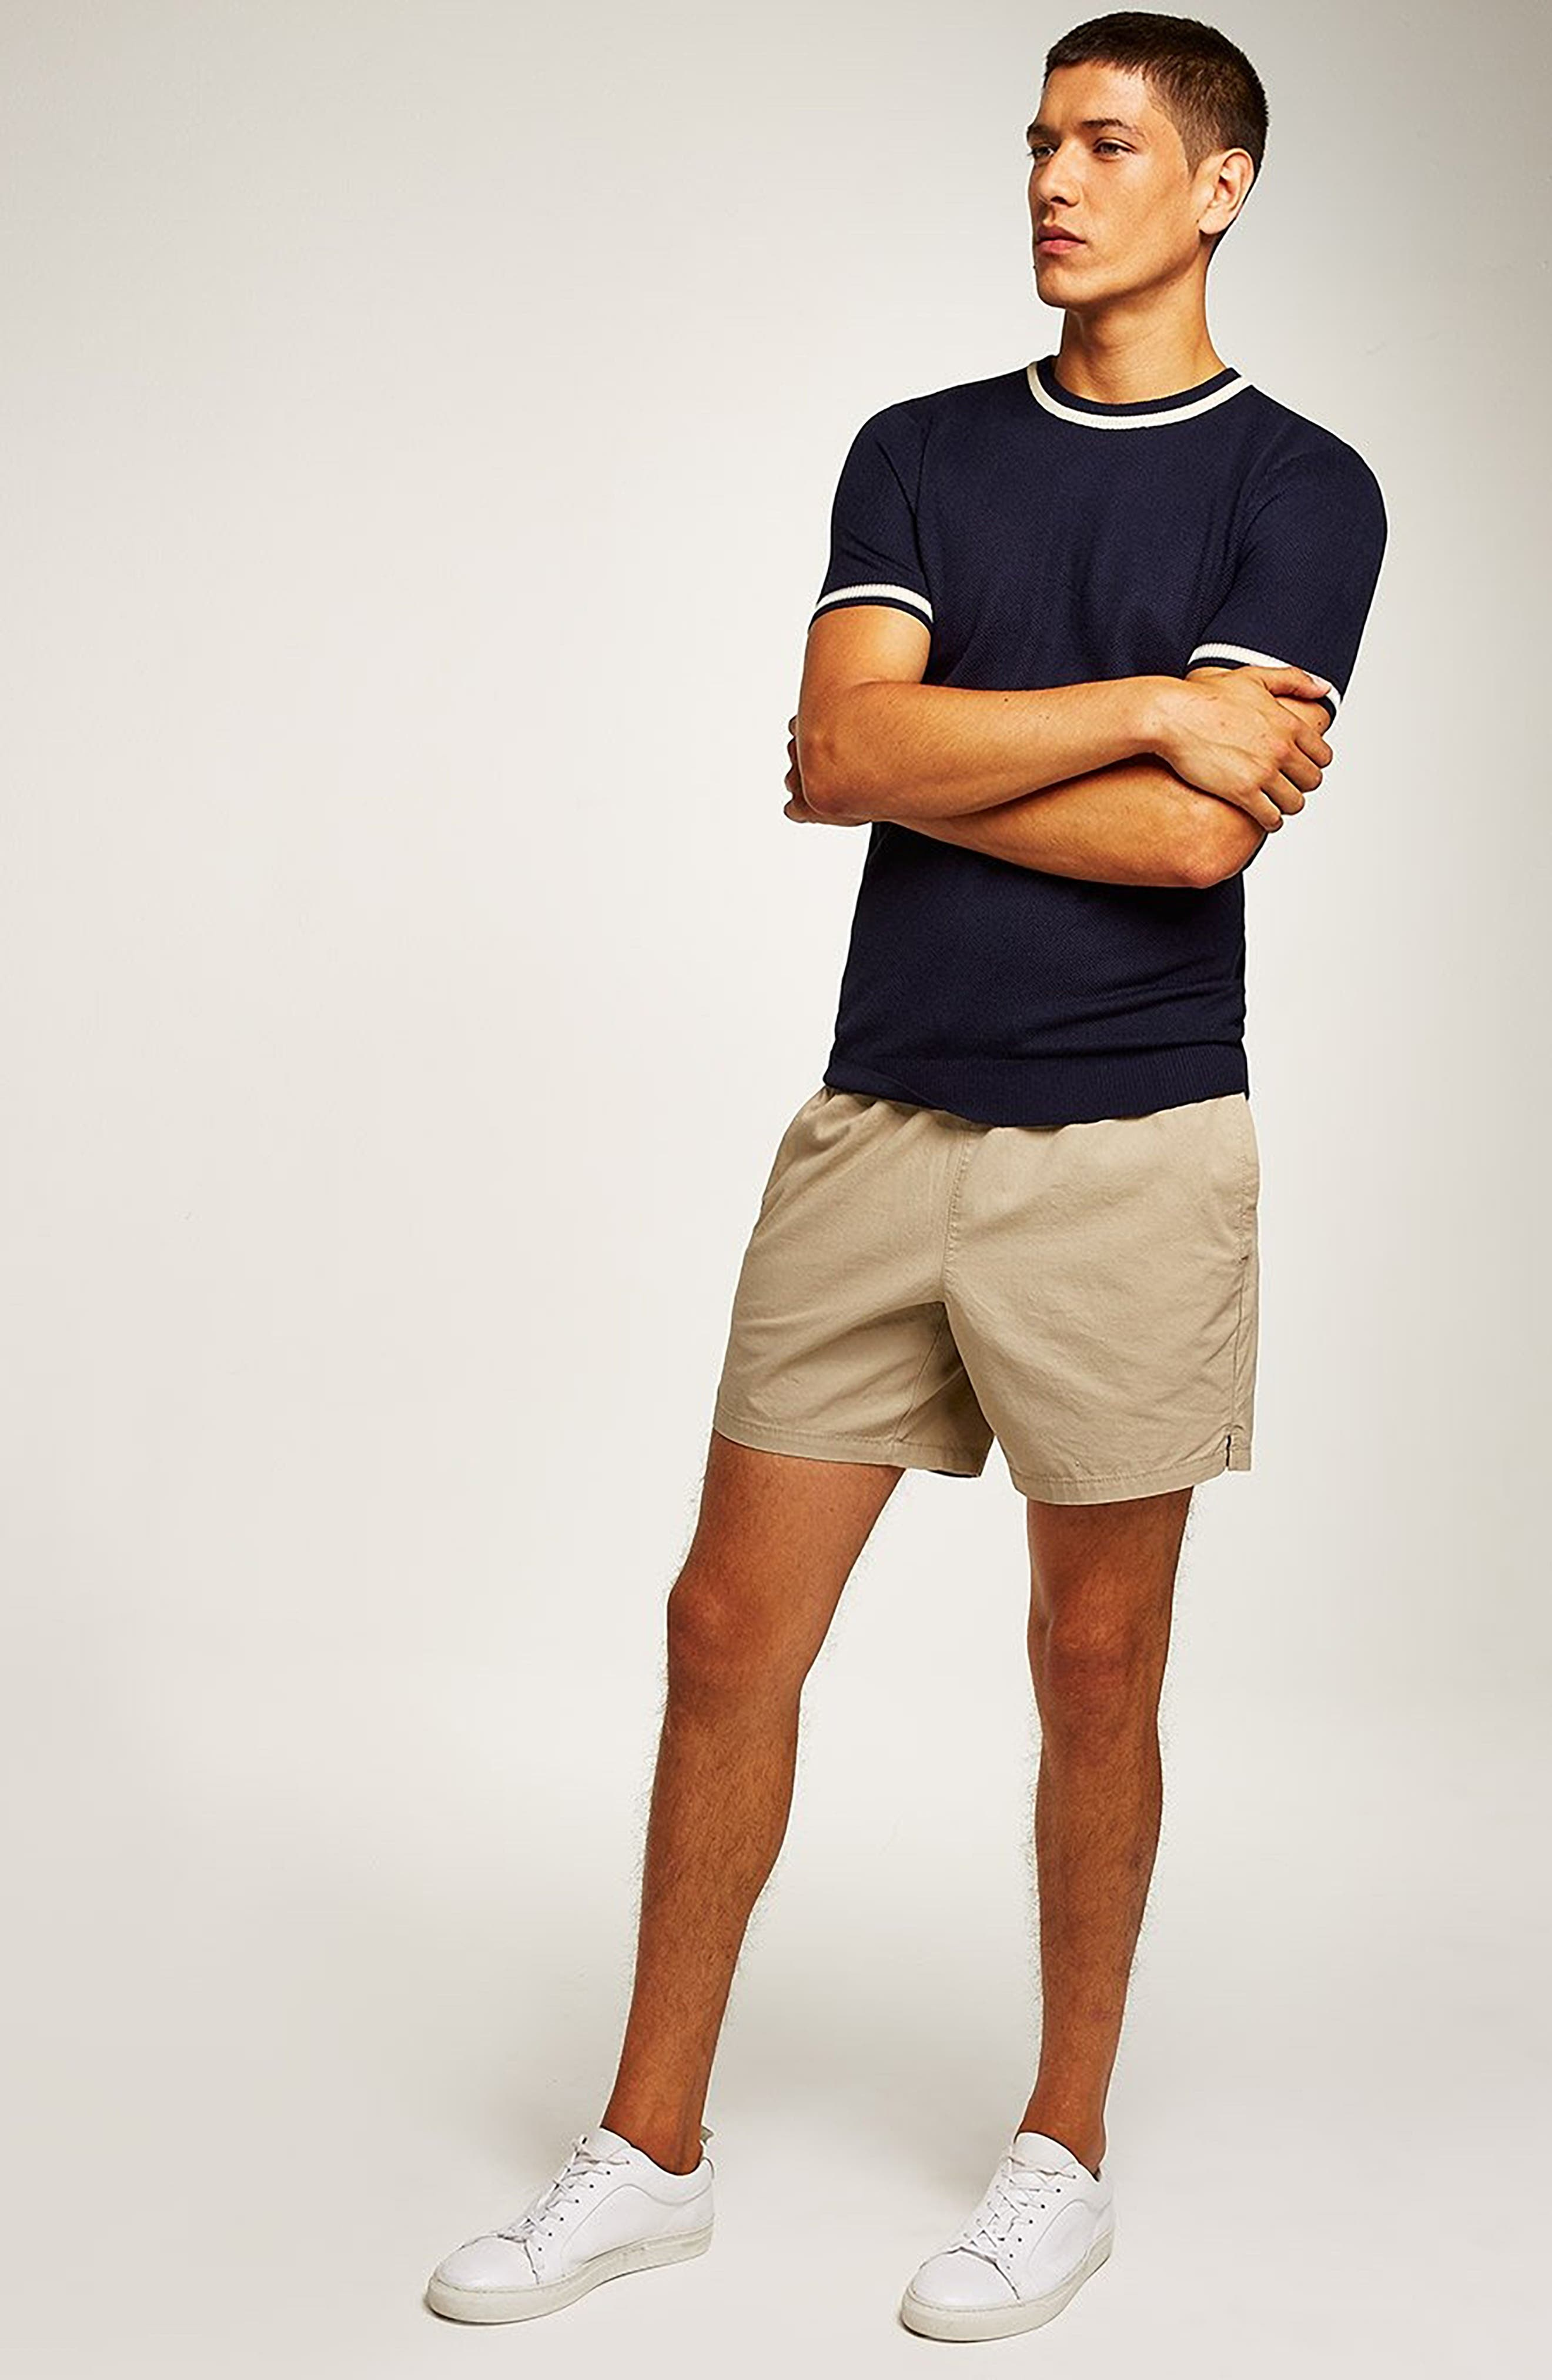 Tipping Classic Fit Short Sleeve Sweater,                             Alternate thumbnail 5, color,                             NAVY BLUE